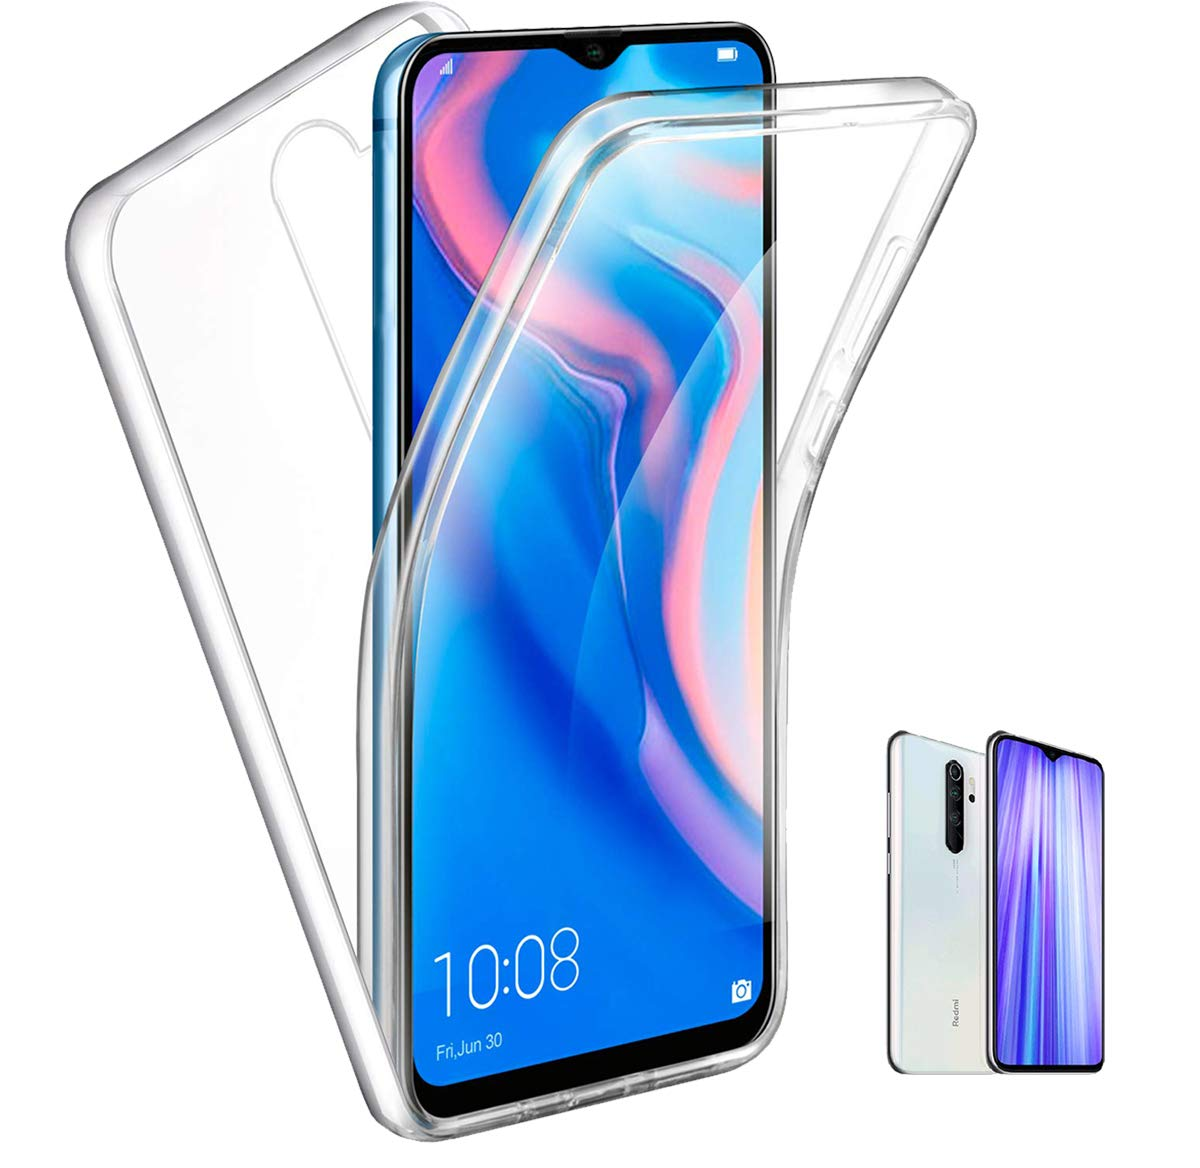 360 Full Body Case For Xiaomi Redmi Note 8 Pro 7 7A 6 5 4 6A Mi 9 Lite A3 9T A2 8T Double Sided Silicone TPU Double Transparent